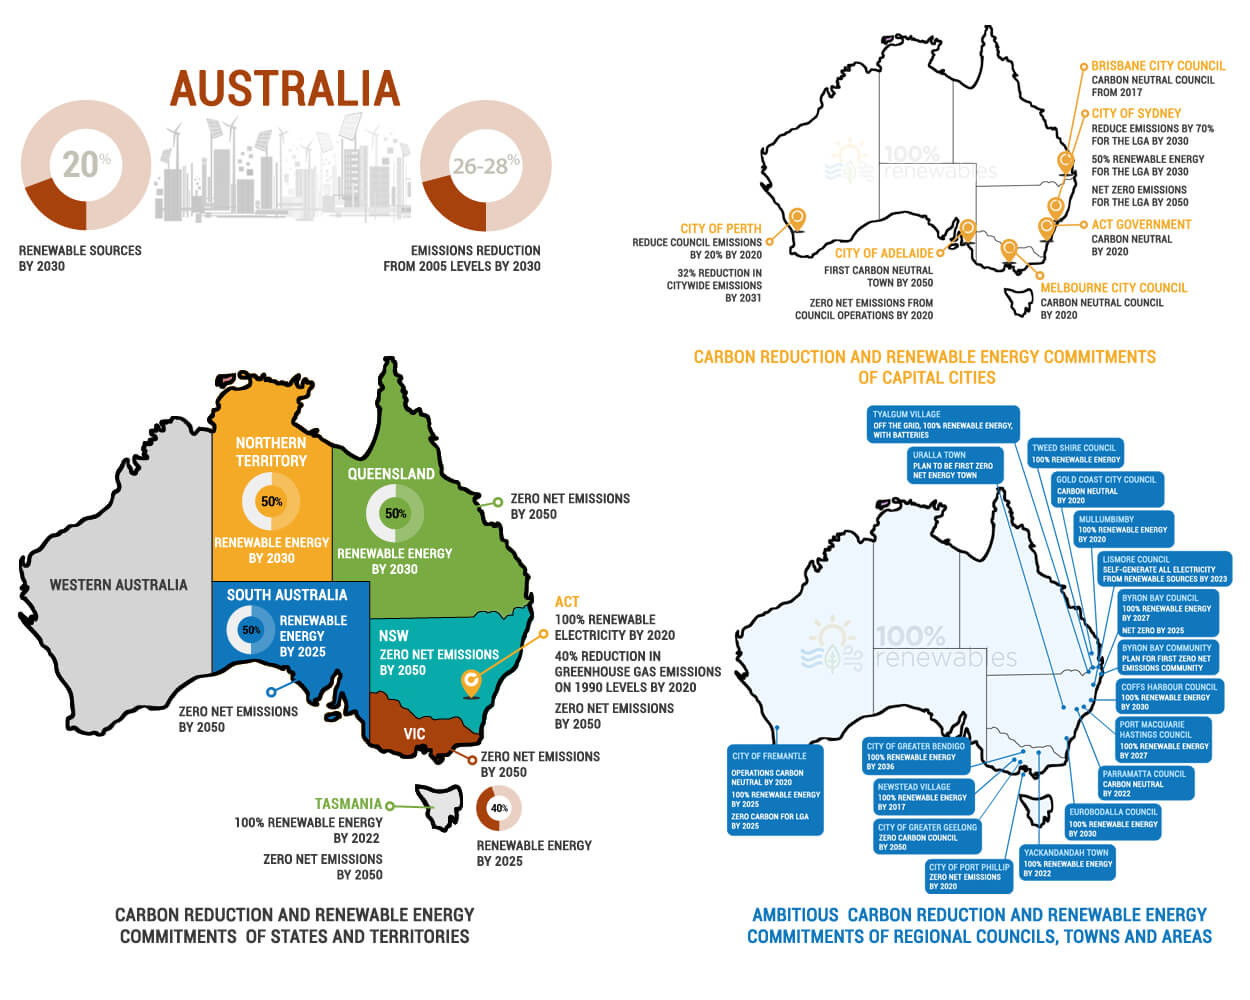 Australia Map States And Territories.Carbon And Renewable Energy Commitments In Australia By States